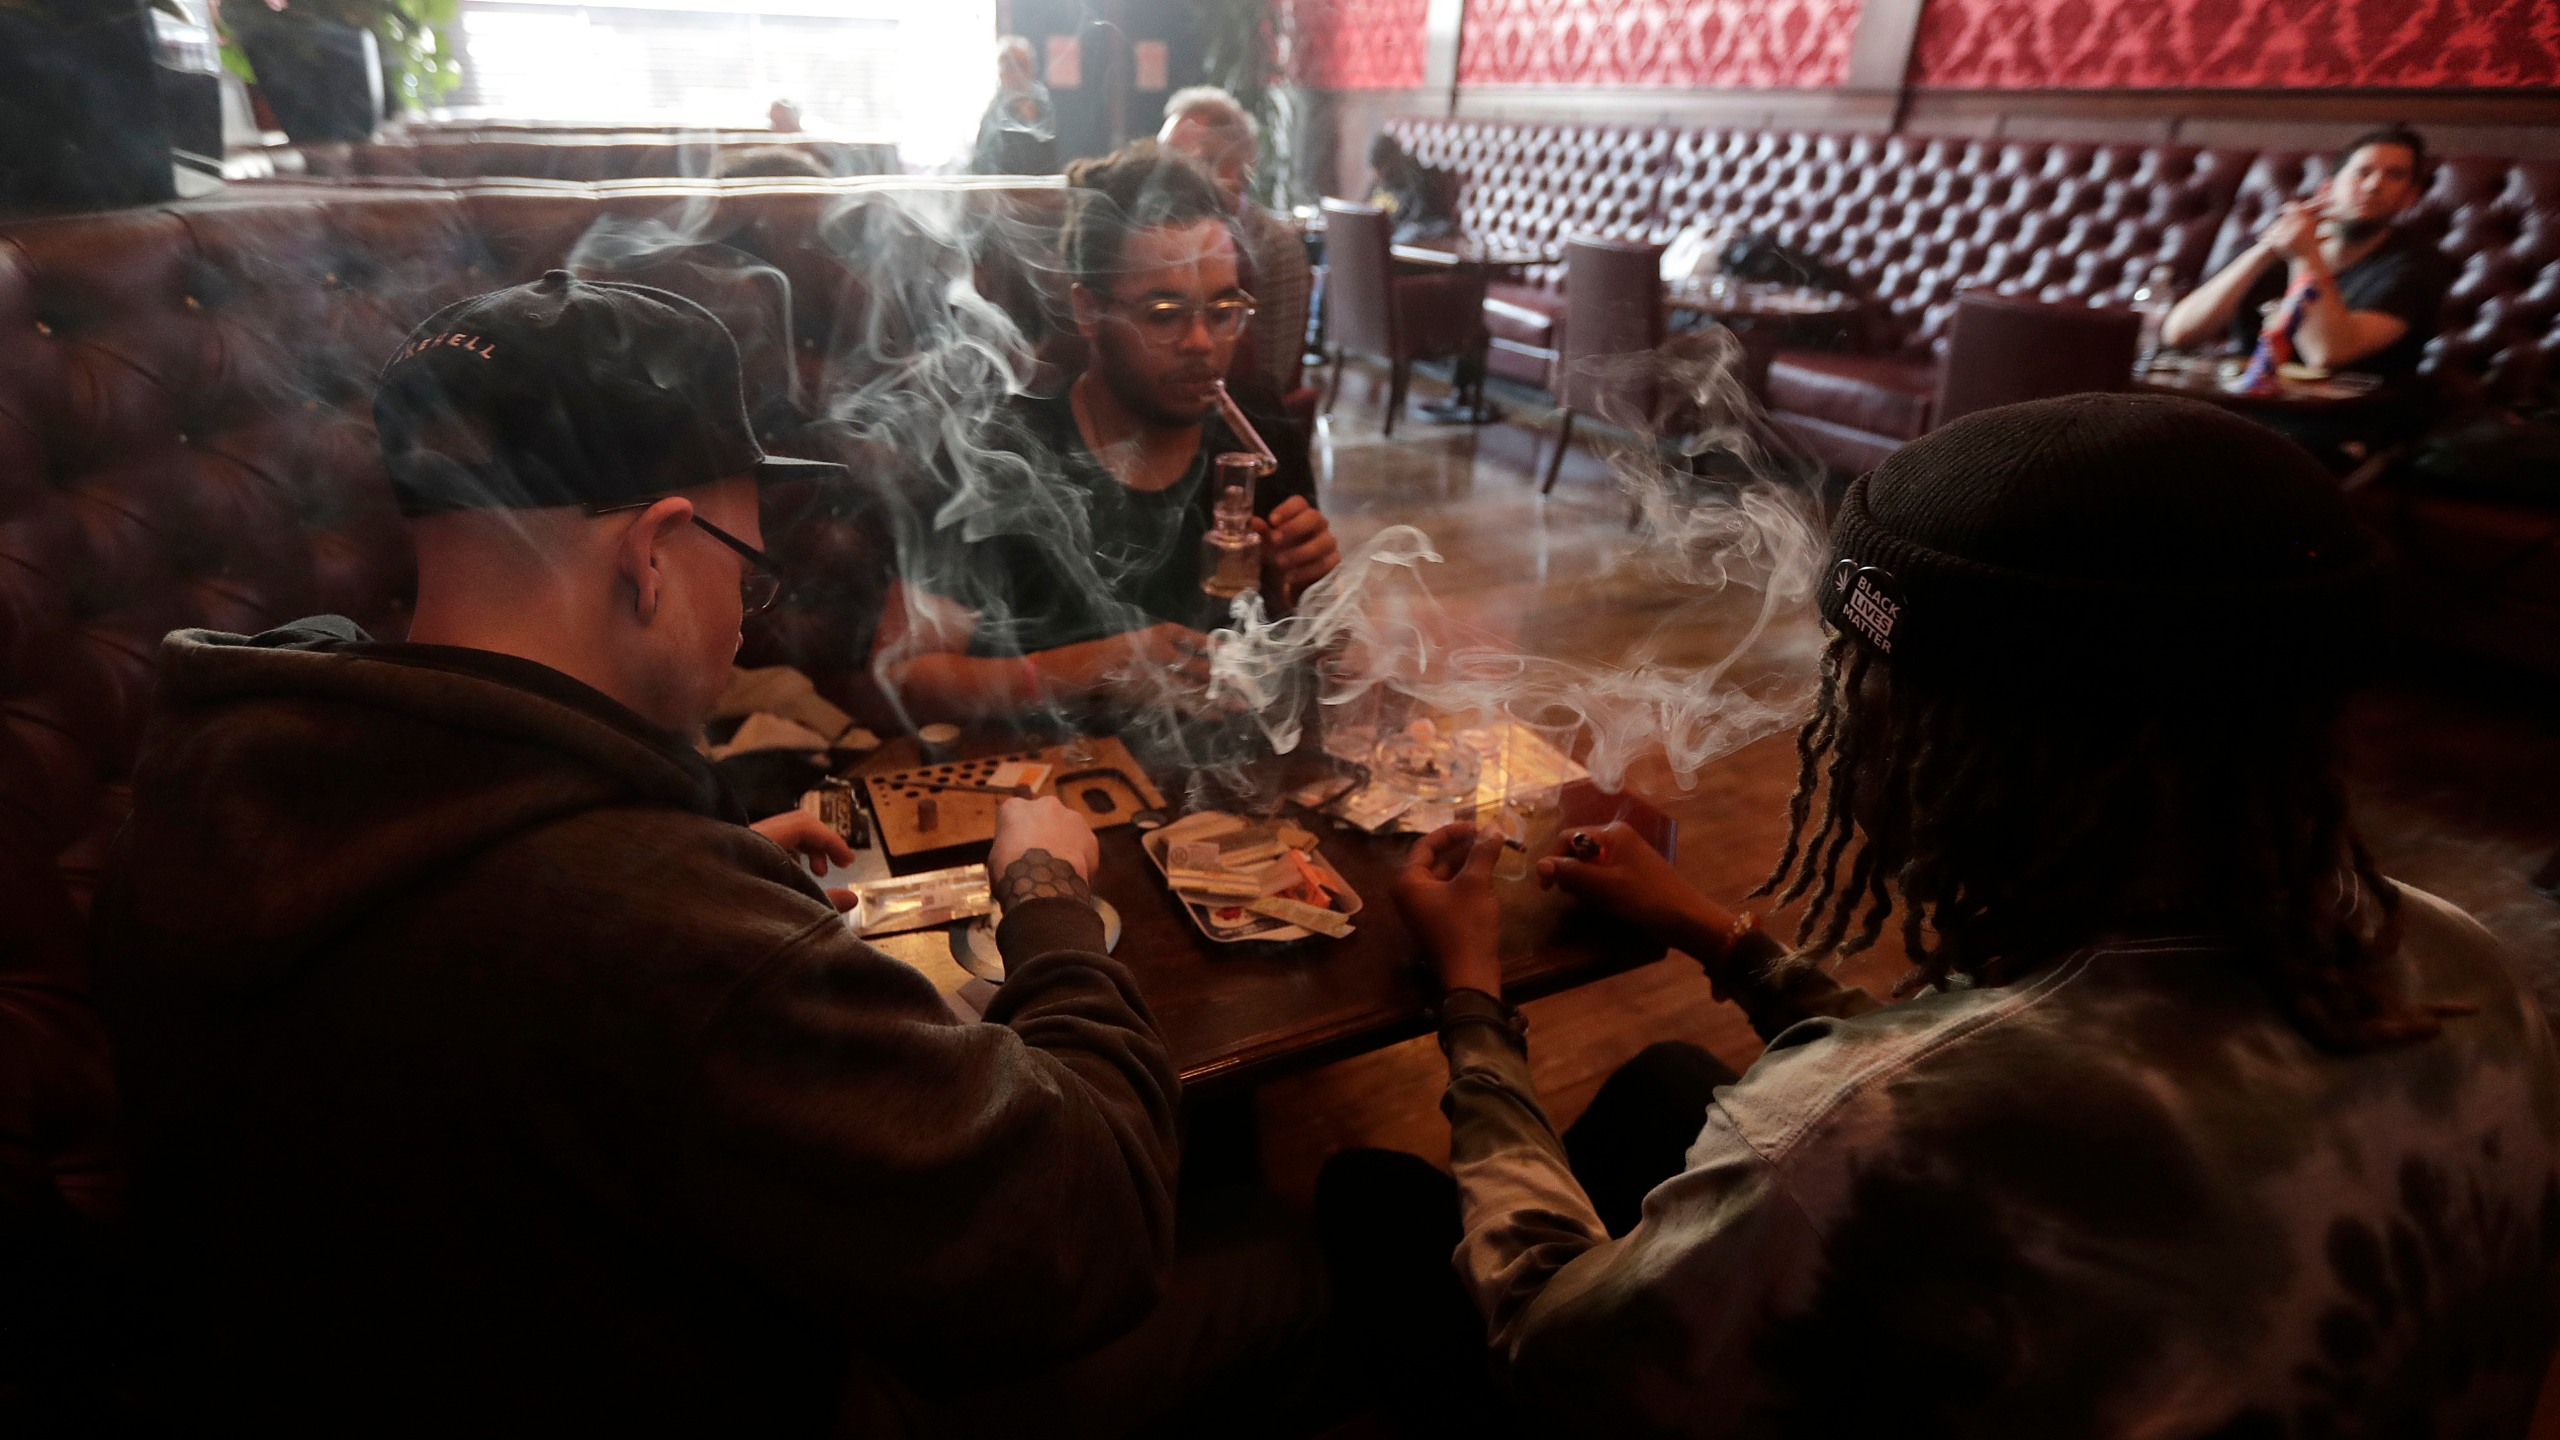 Marijuana_Smoking_Lounges_79274-159532.jpg71337832